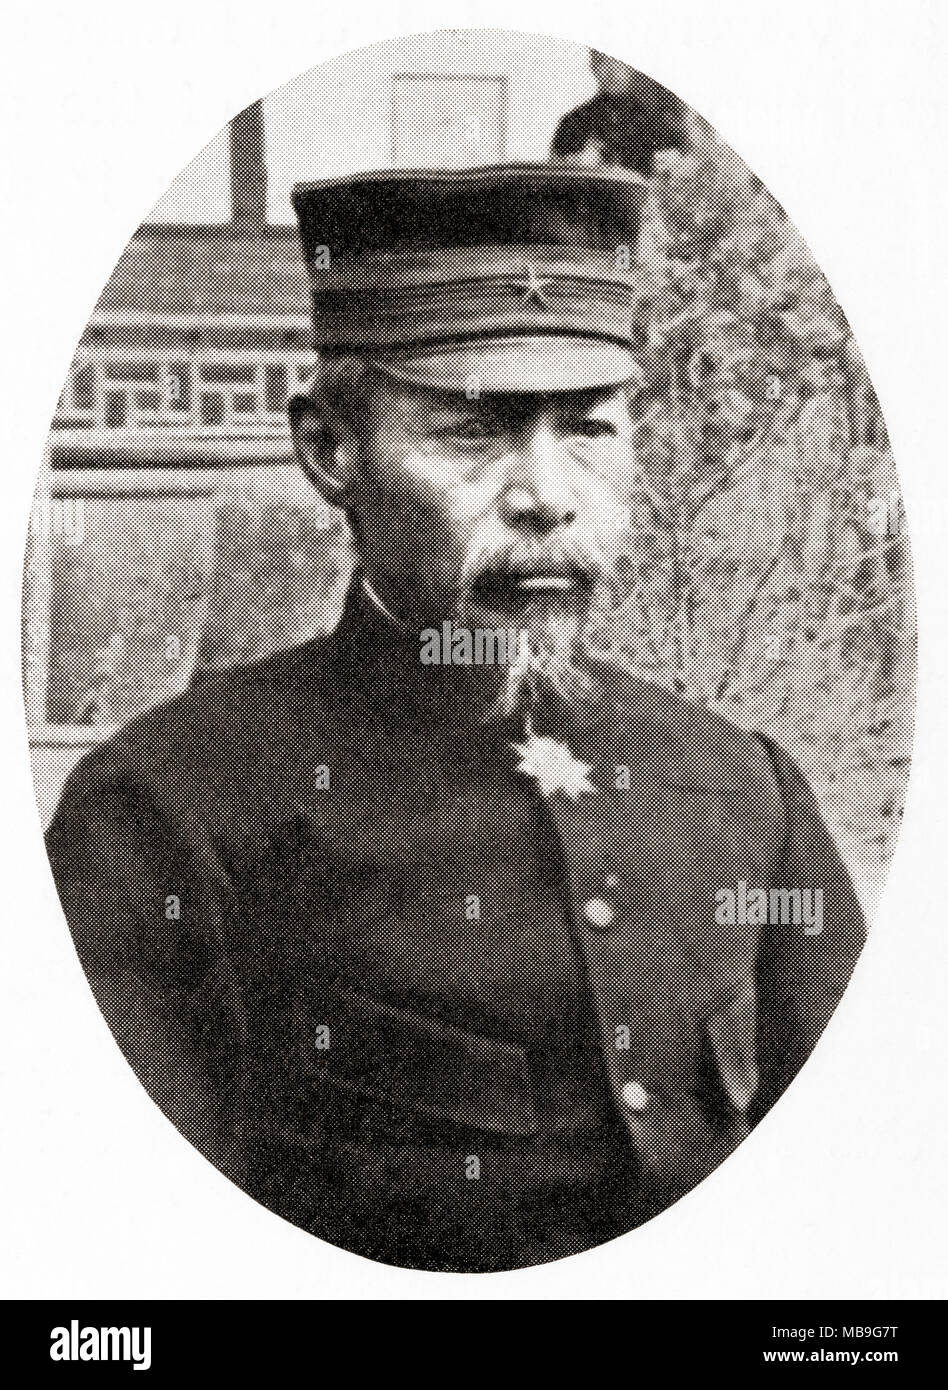 Count Oku Yasukata, 1847 – 1930.  Japanese field marshal and leading figure in the early Imperial Japanese Army.  From Hutchinson's History of the Nations, published 1915 - Stock Image